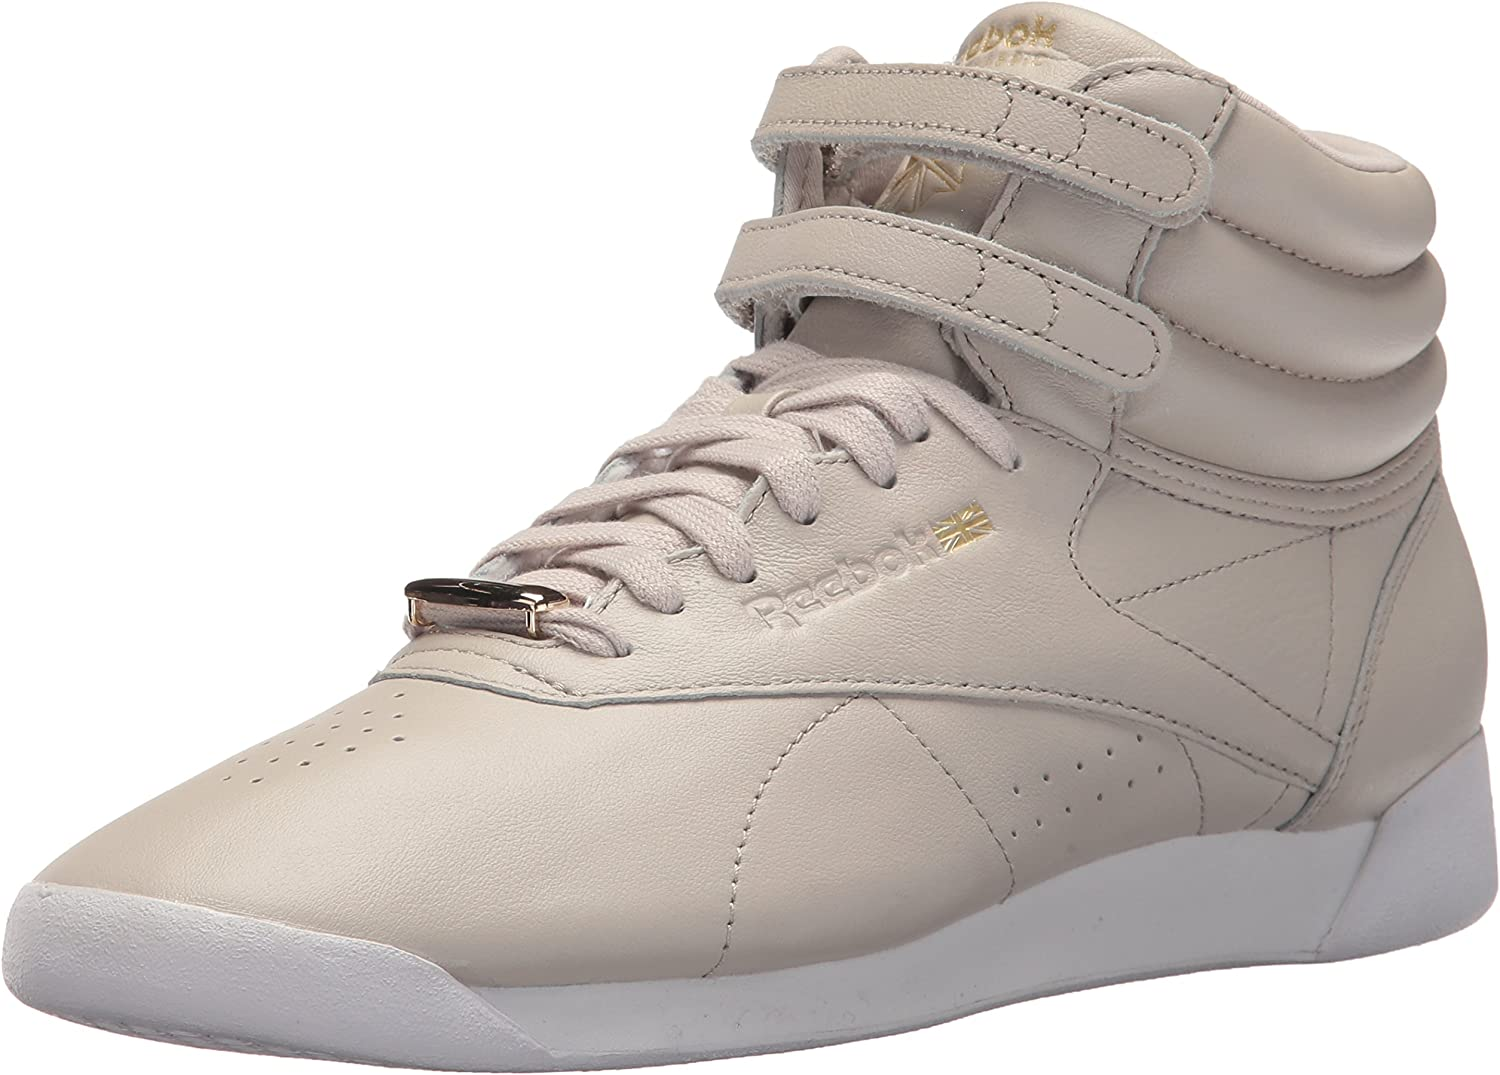 Reebok Womens F S Hi Muted Walking shoes